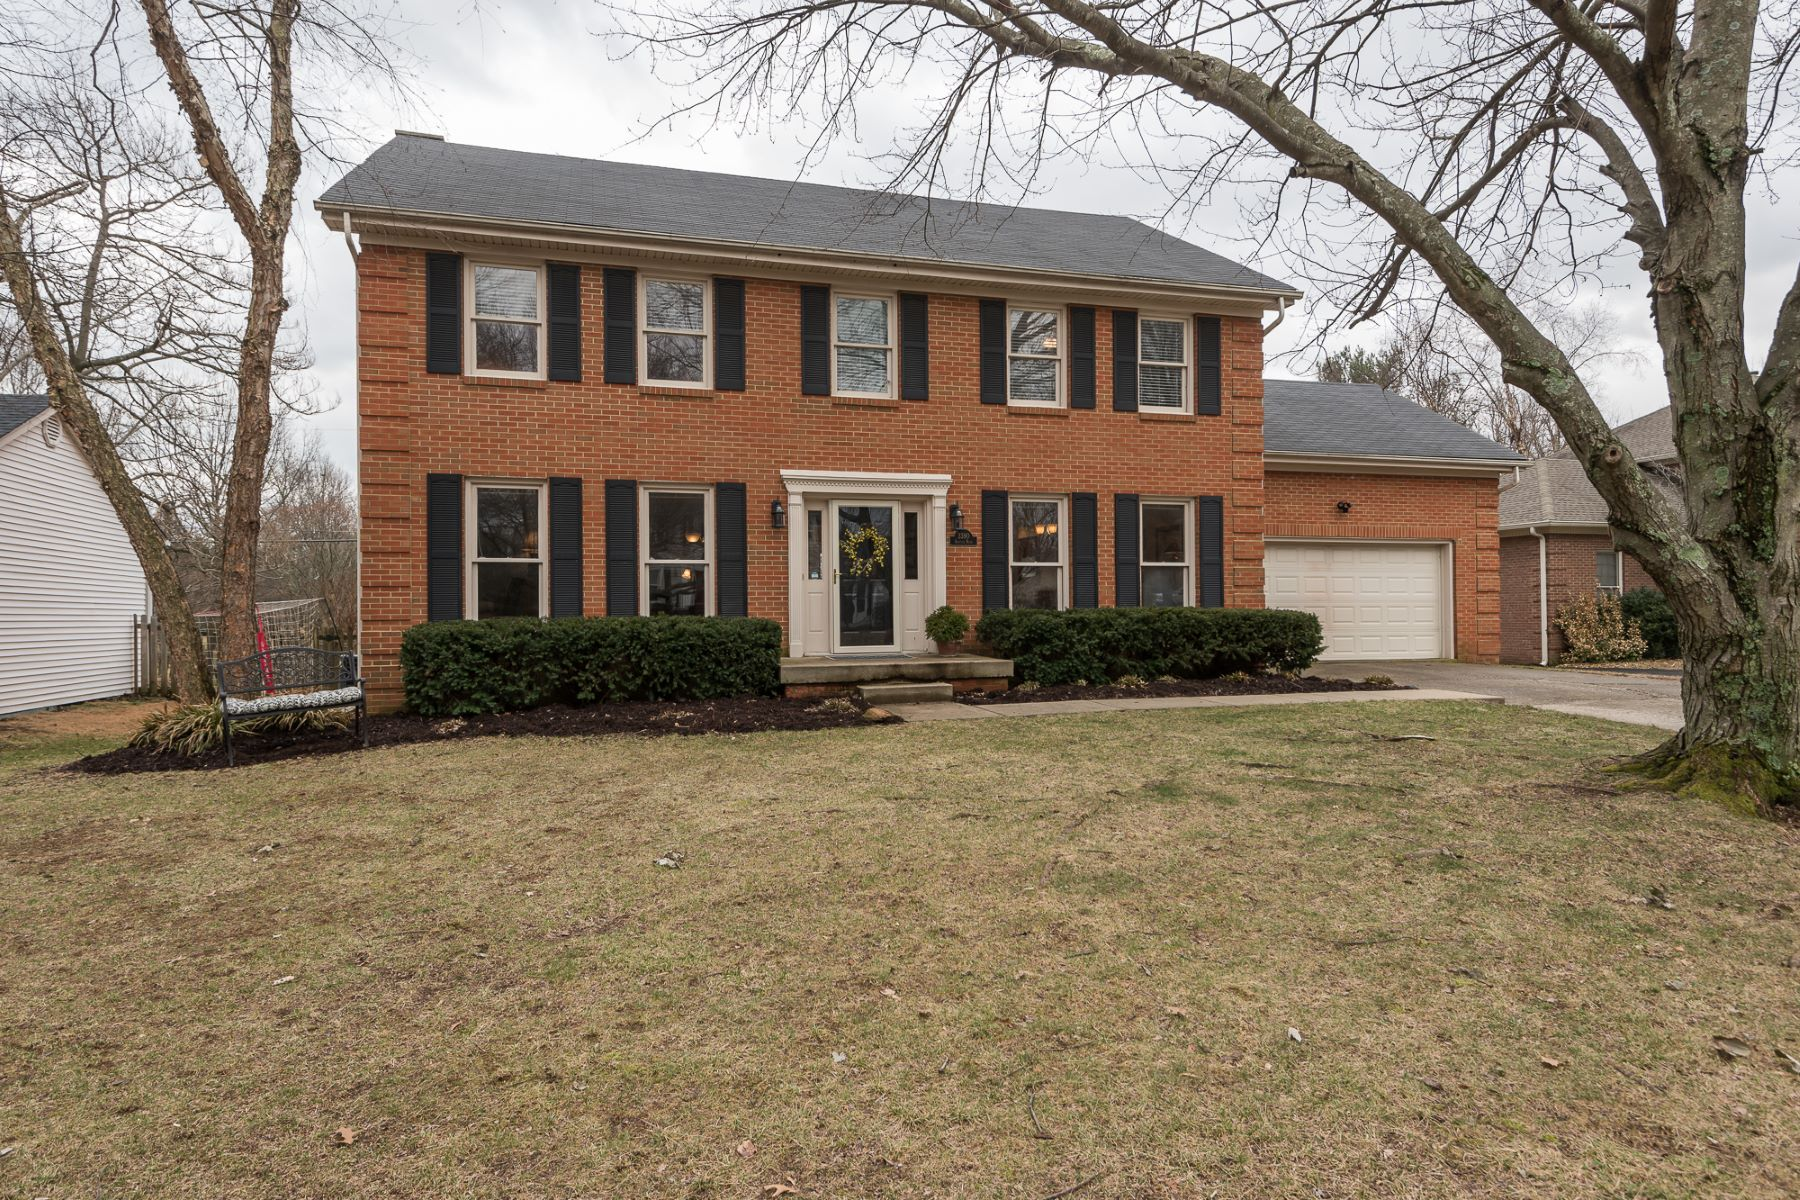 Single Family Home for Sale at 3390 Snaffle Road 3390 Snaffle Road Lexington, Kentucky 40513 United States